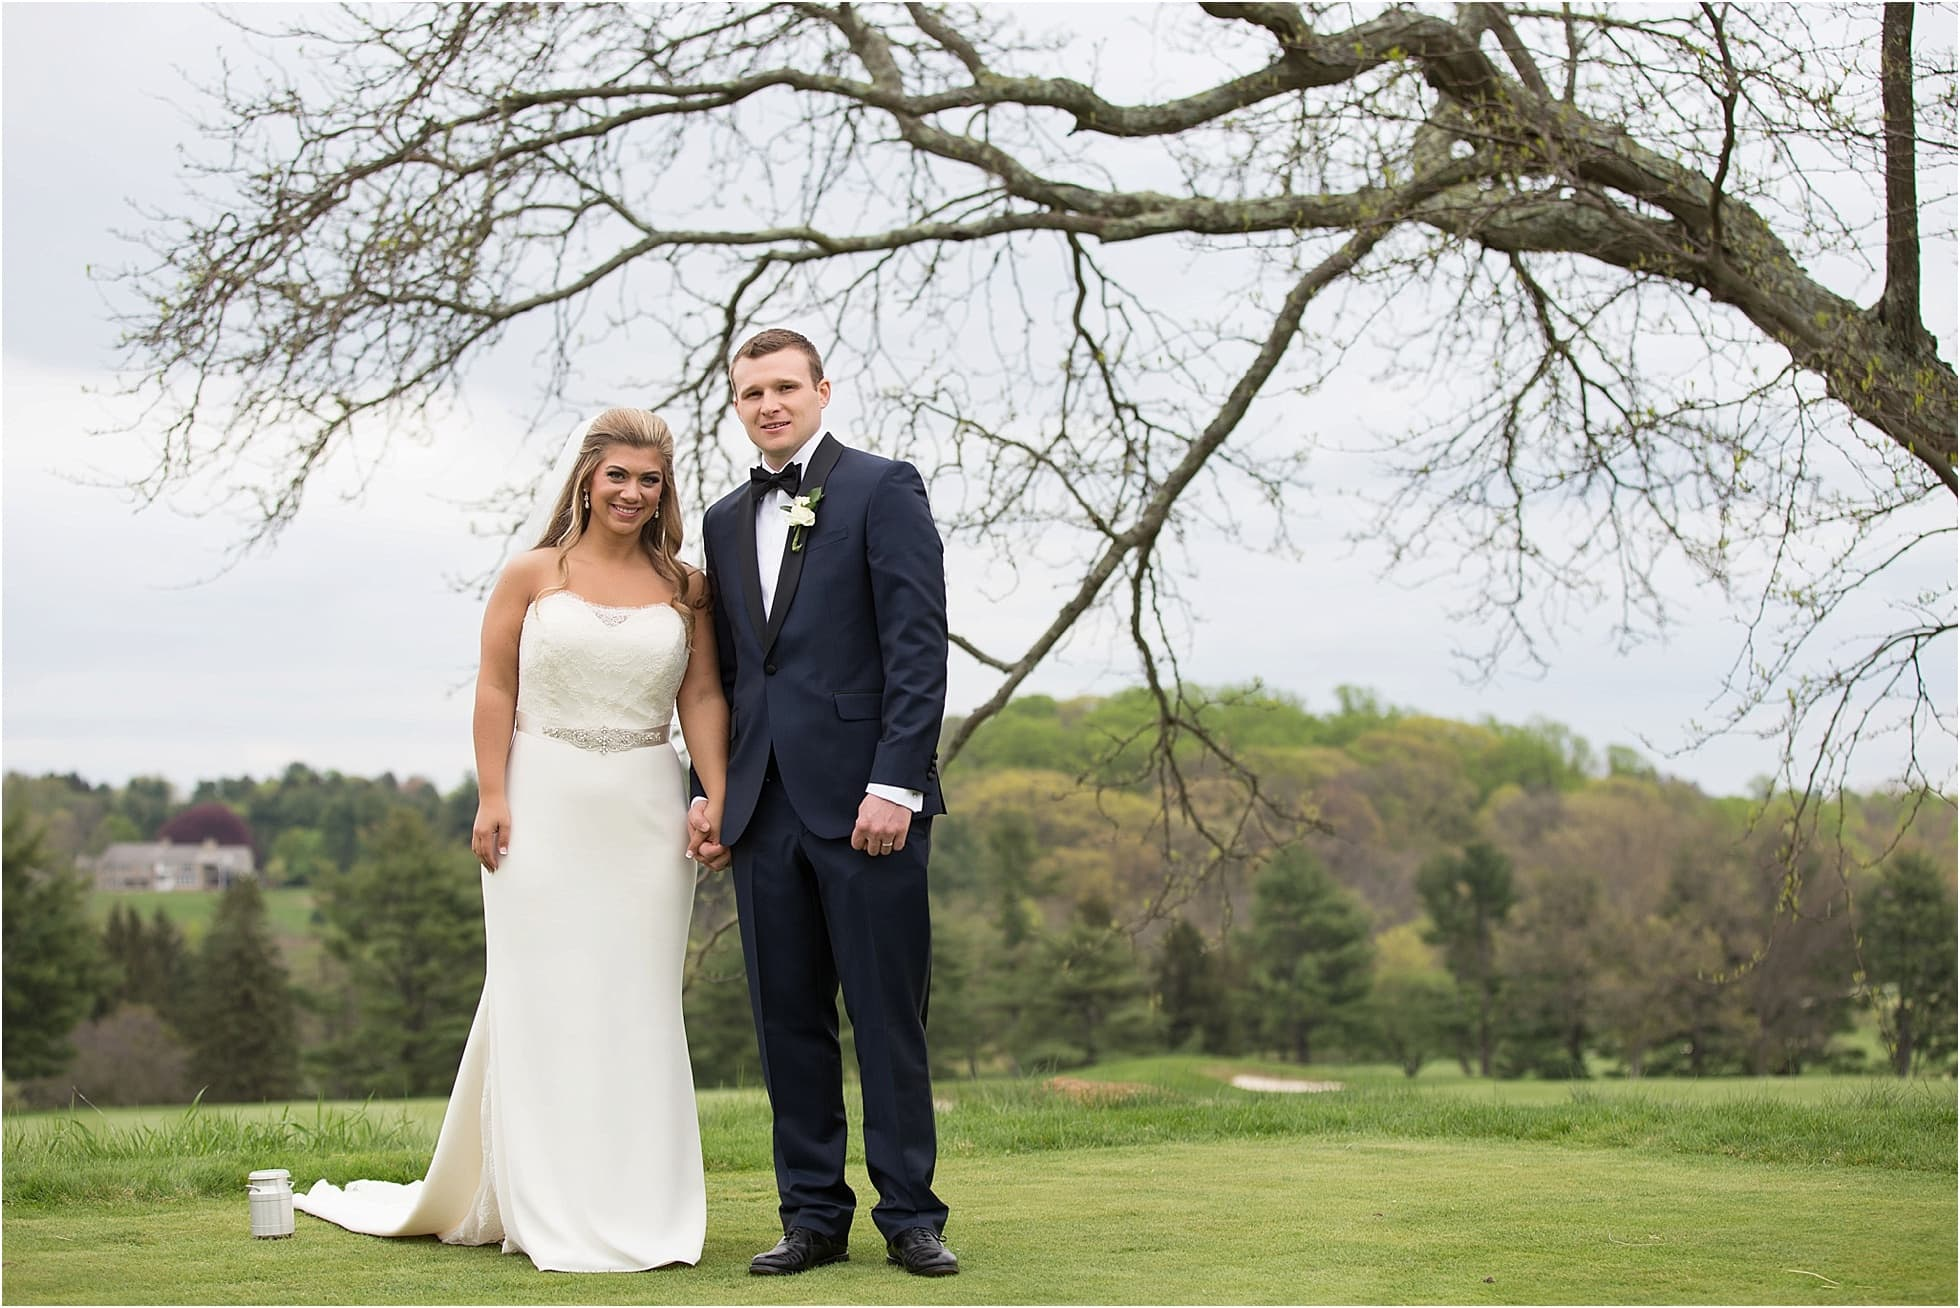 A White Manor Country Club Bride And Groom